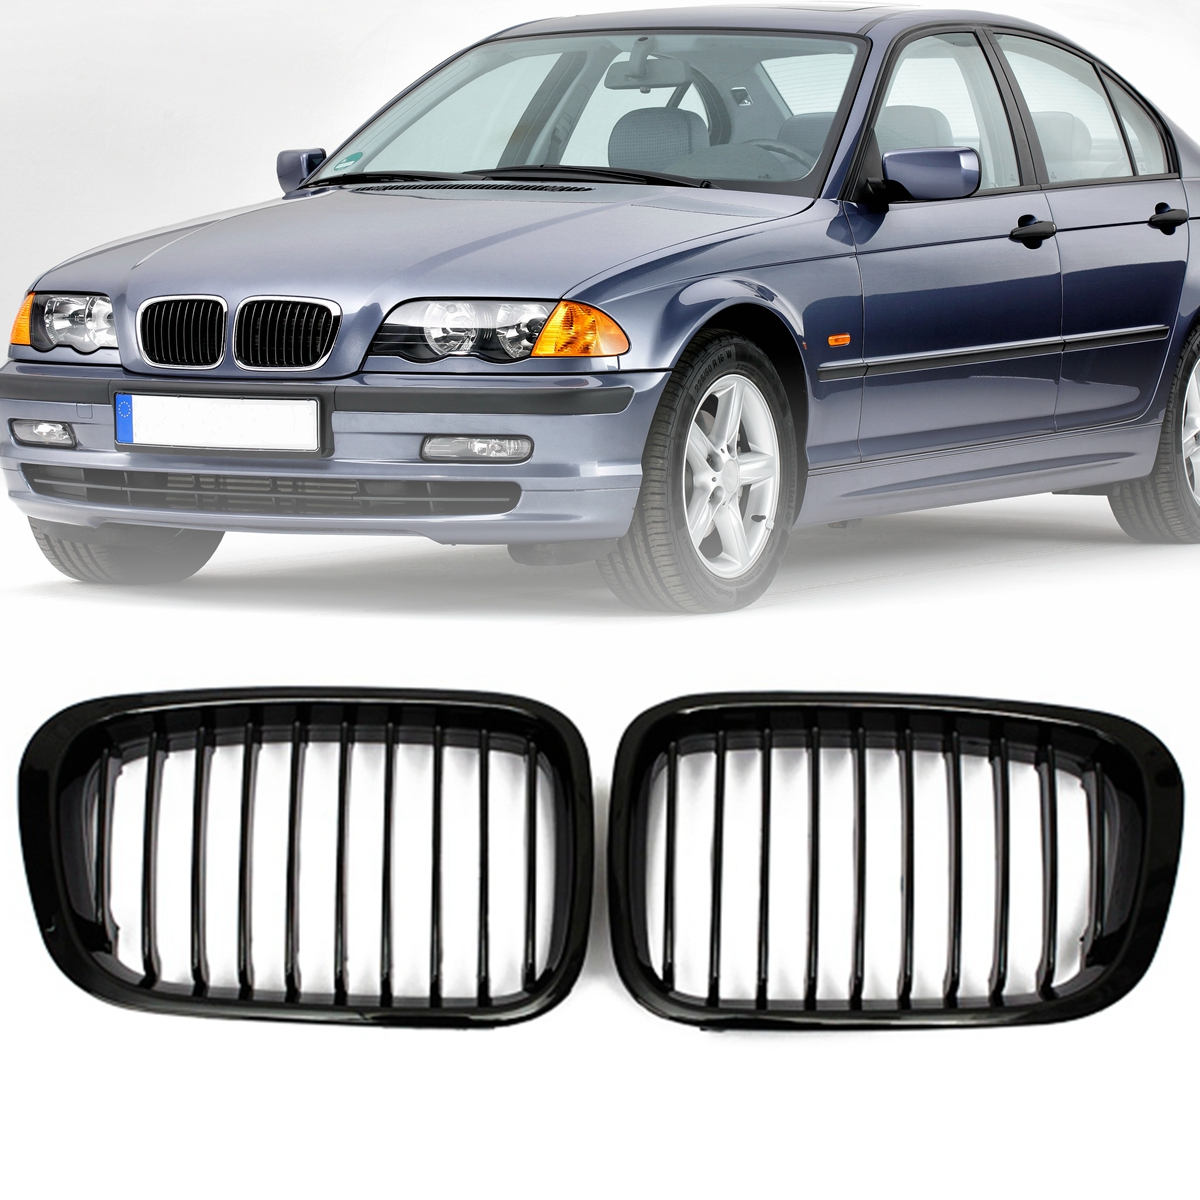 Pair Gloss Black/Matte Black Front Kidney Grill Grille For BMW 3 Series E46 1999 2000 2001 4Door 323 325